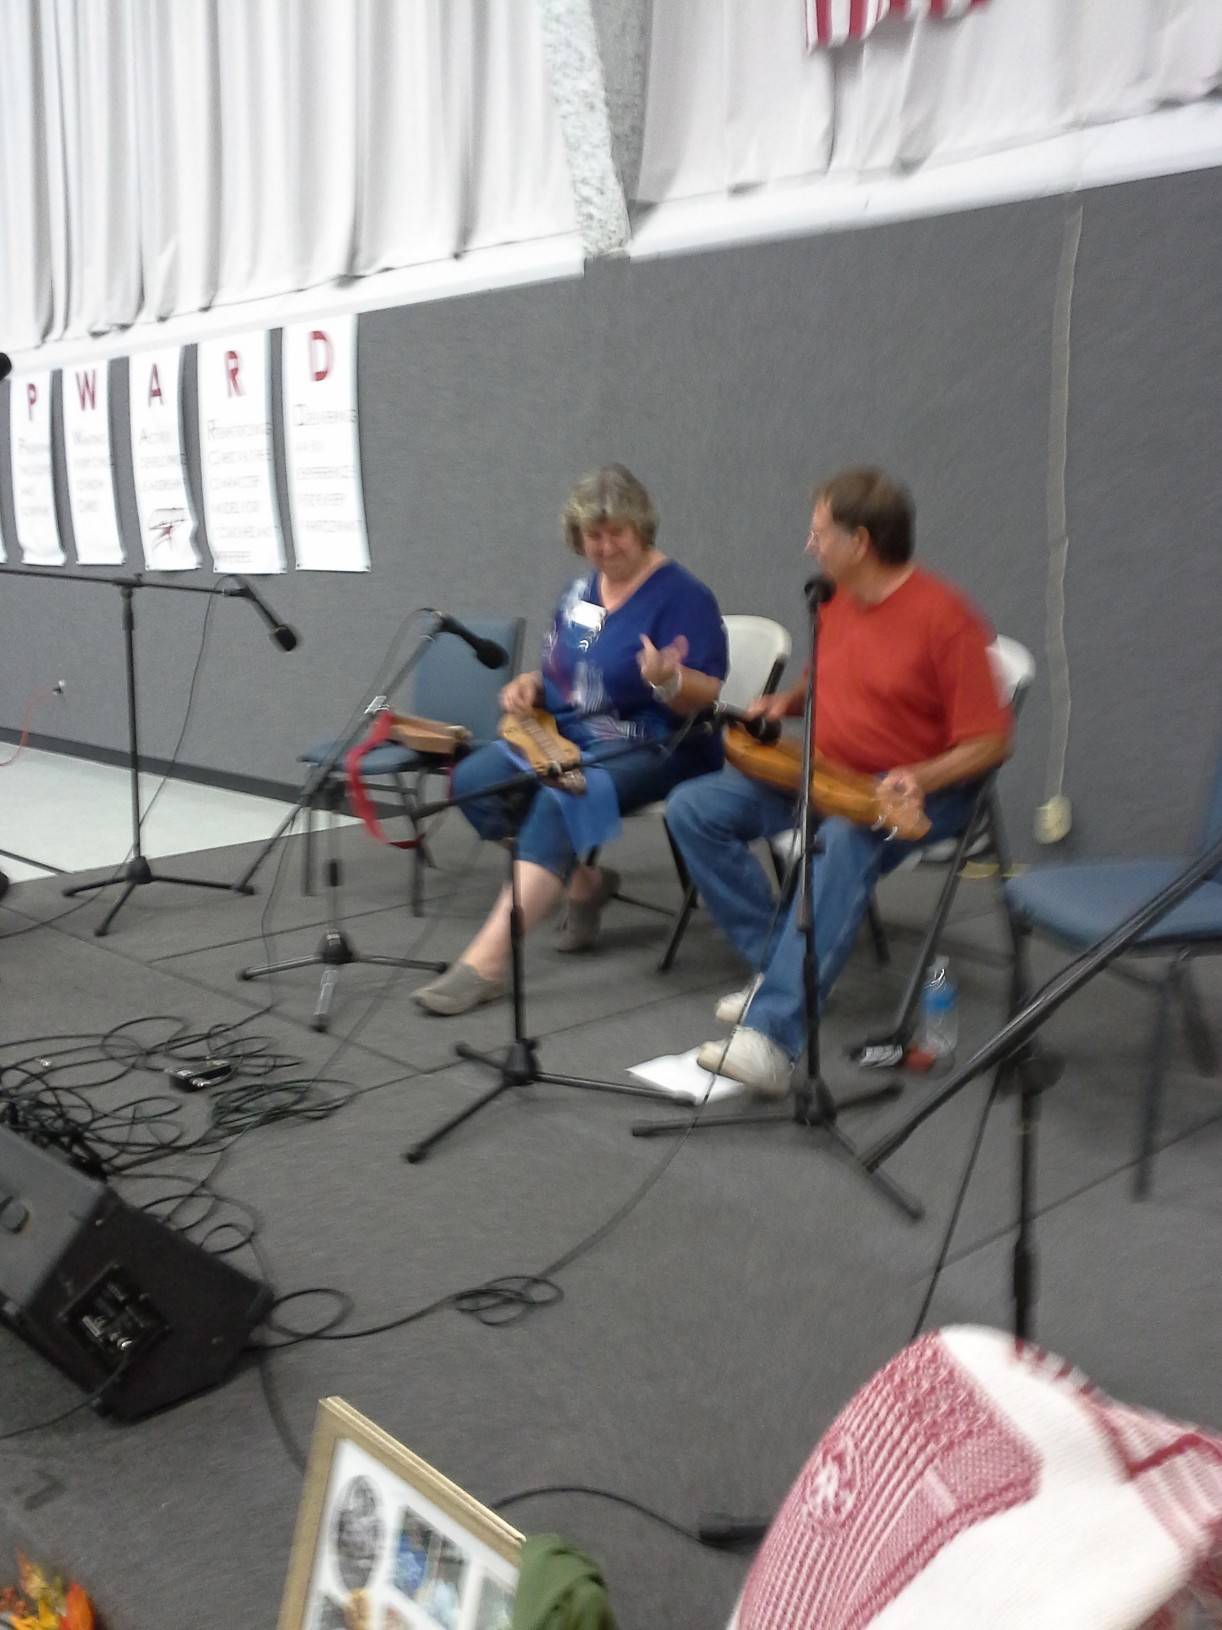 Jackie and Randy at Evansville Festival